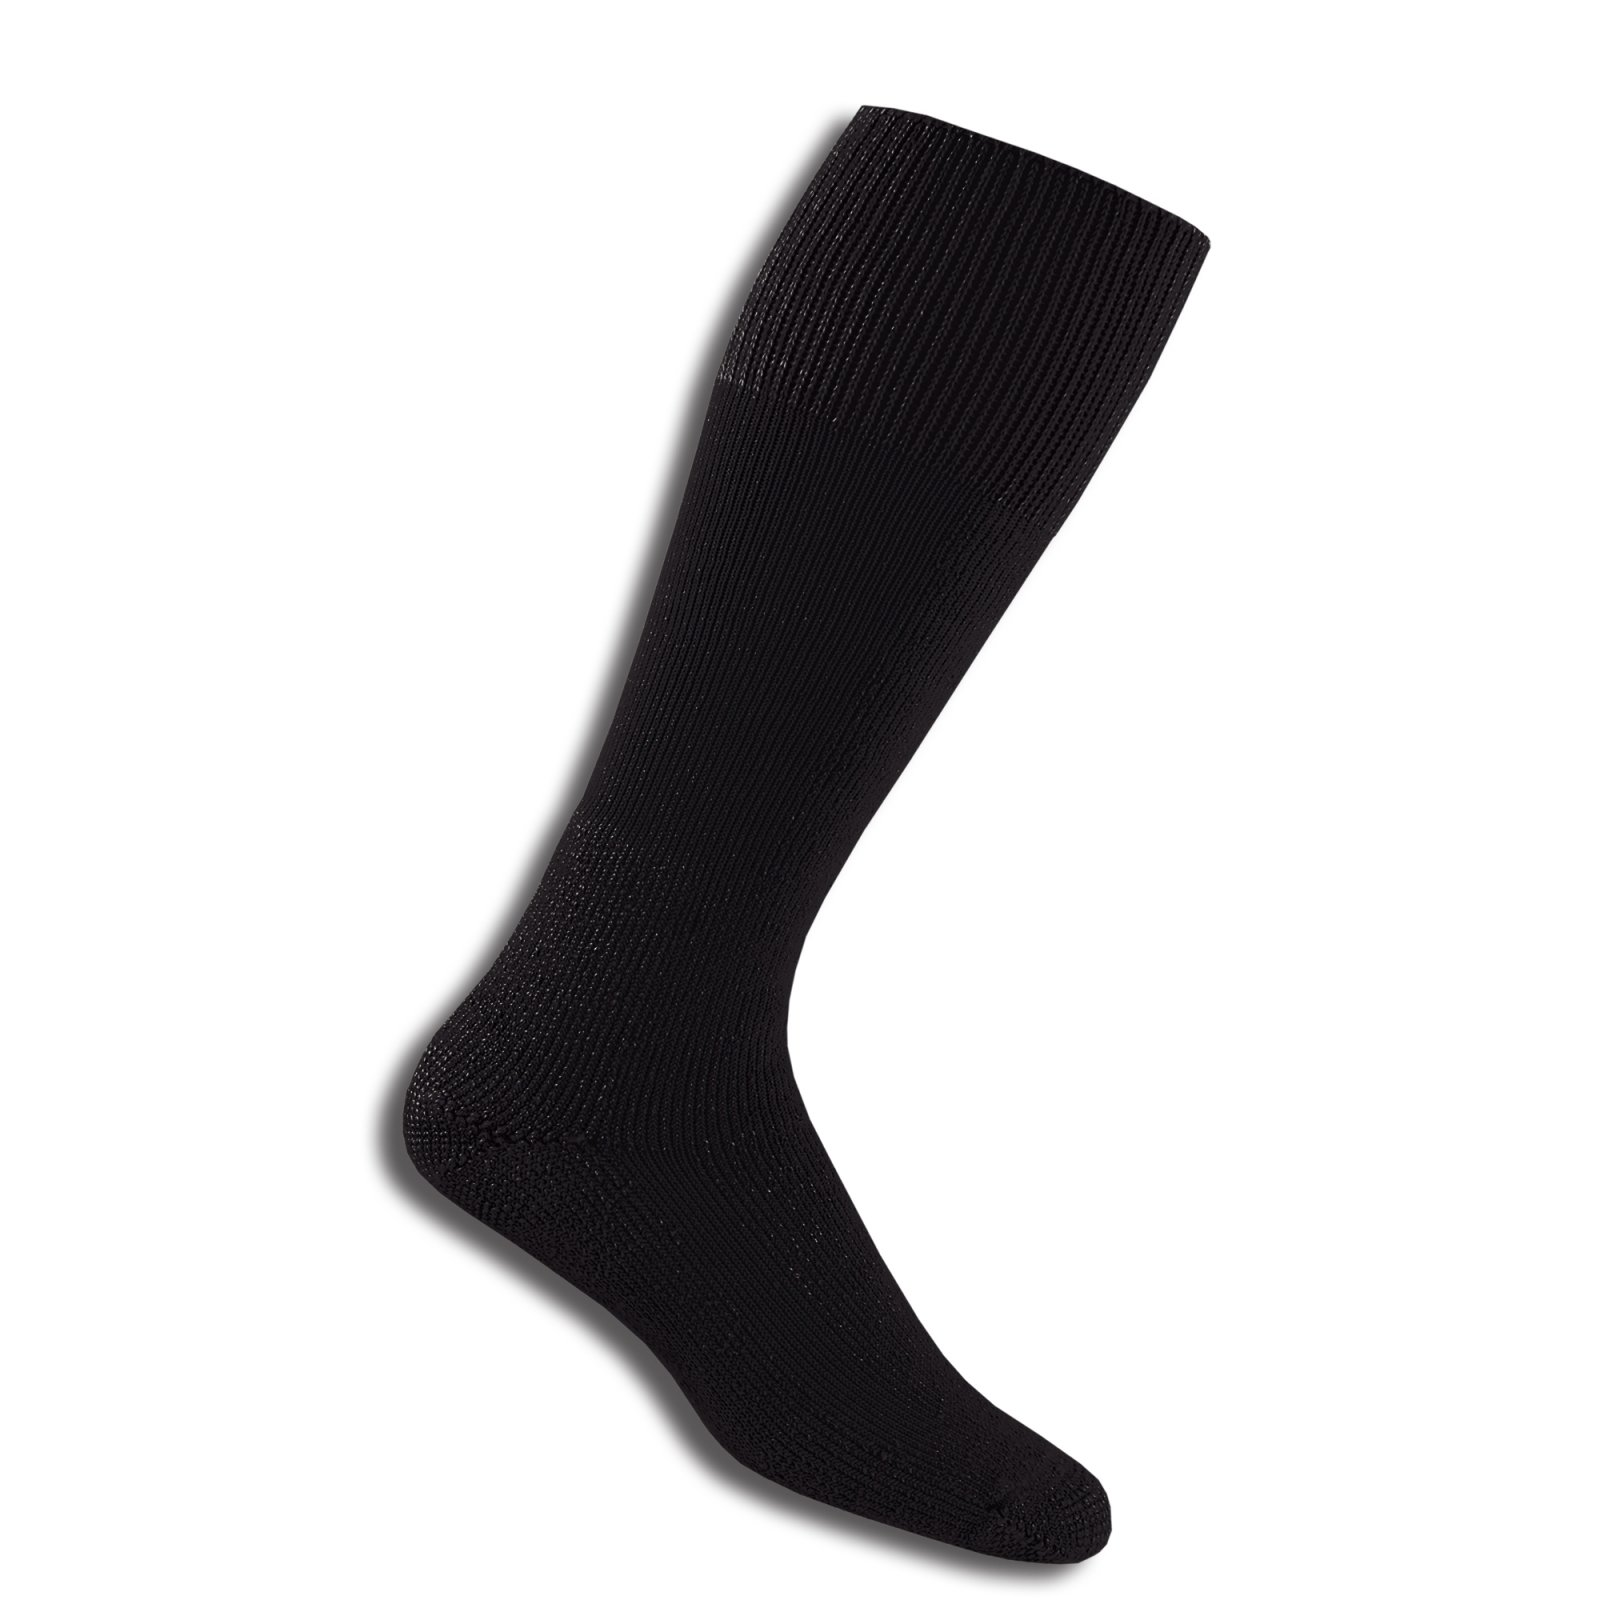 Thorlos Thick Cushion Combat Boot Over Calf Sock Size: L, Black with a Helicase Sock Ring